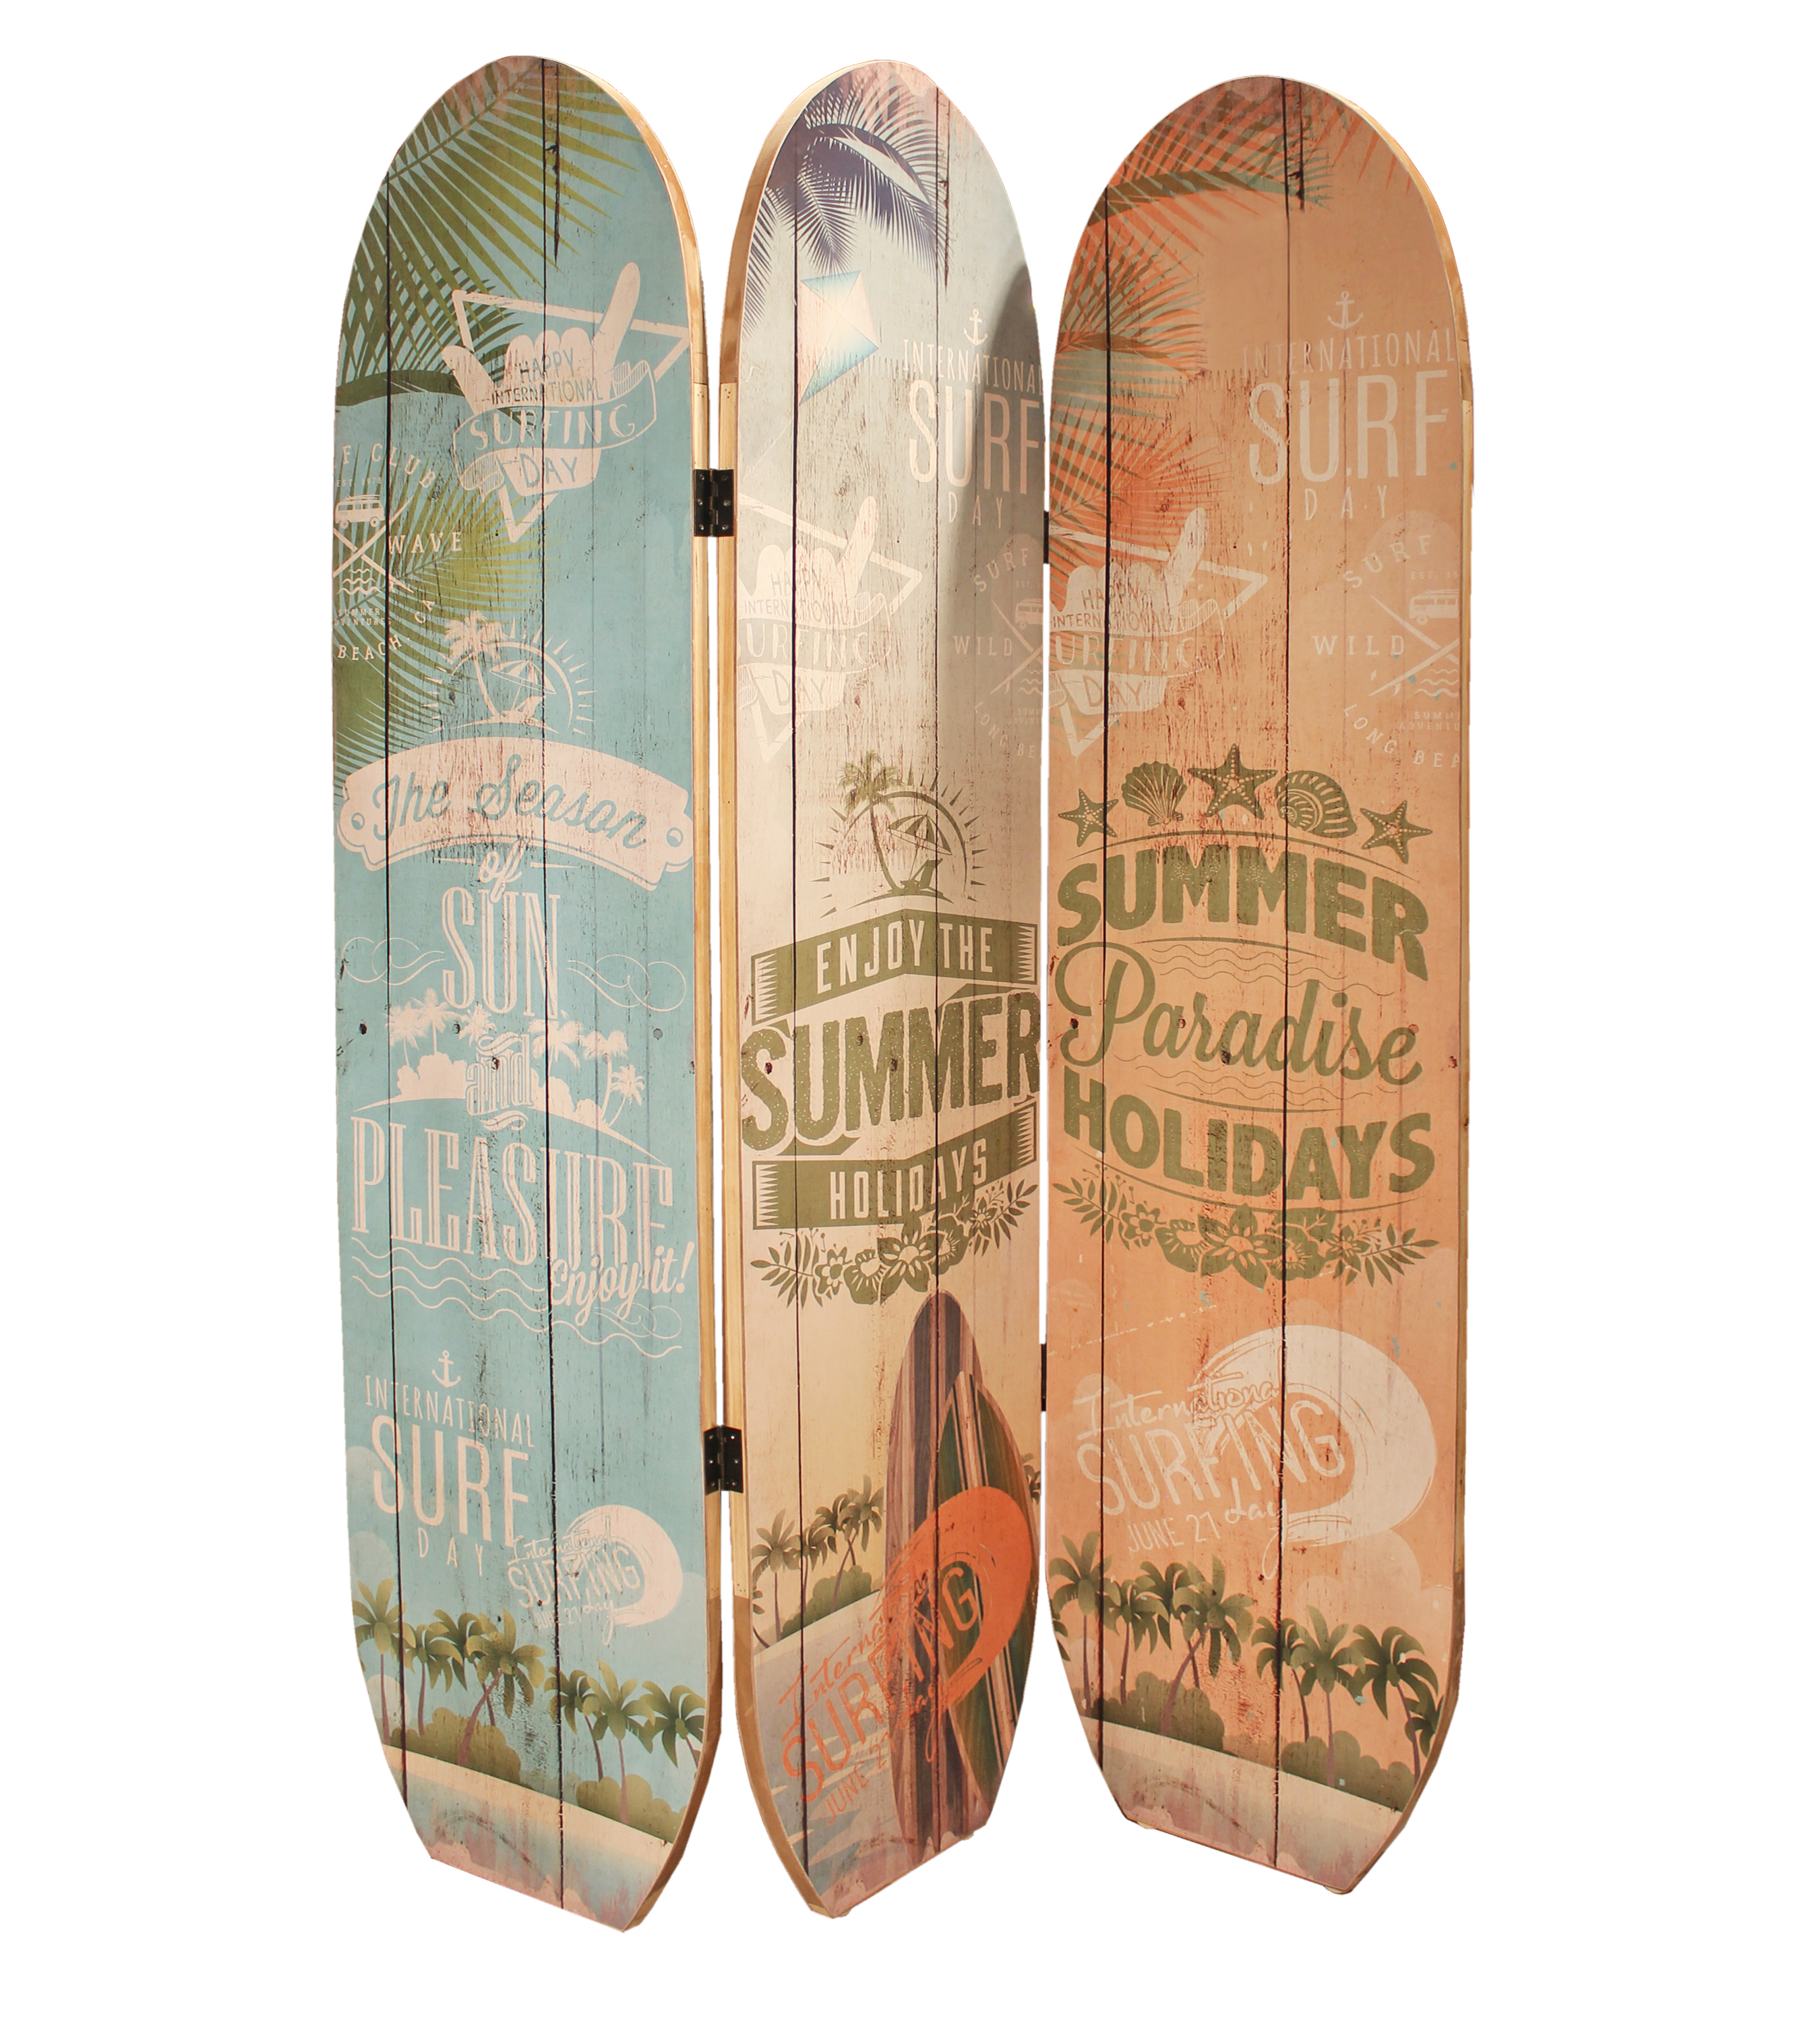 Screen Gems Surfboard Summer Screen SG-301